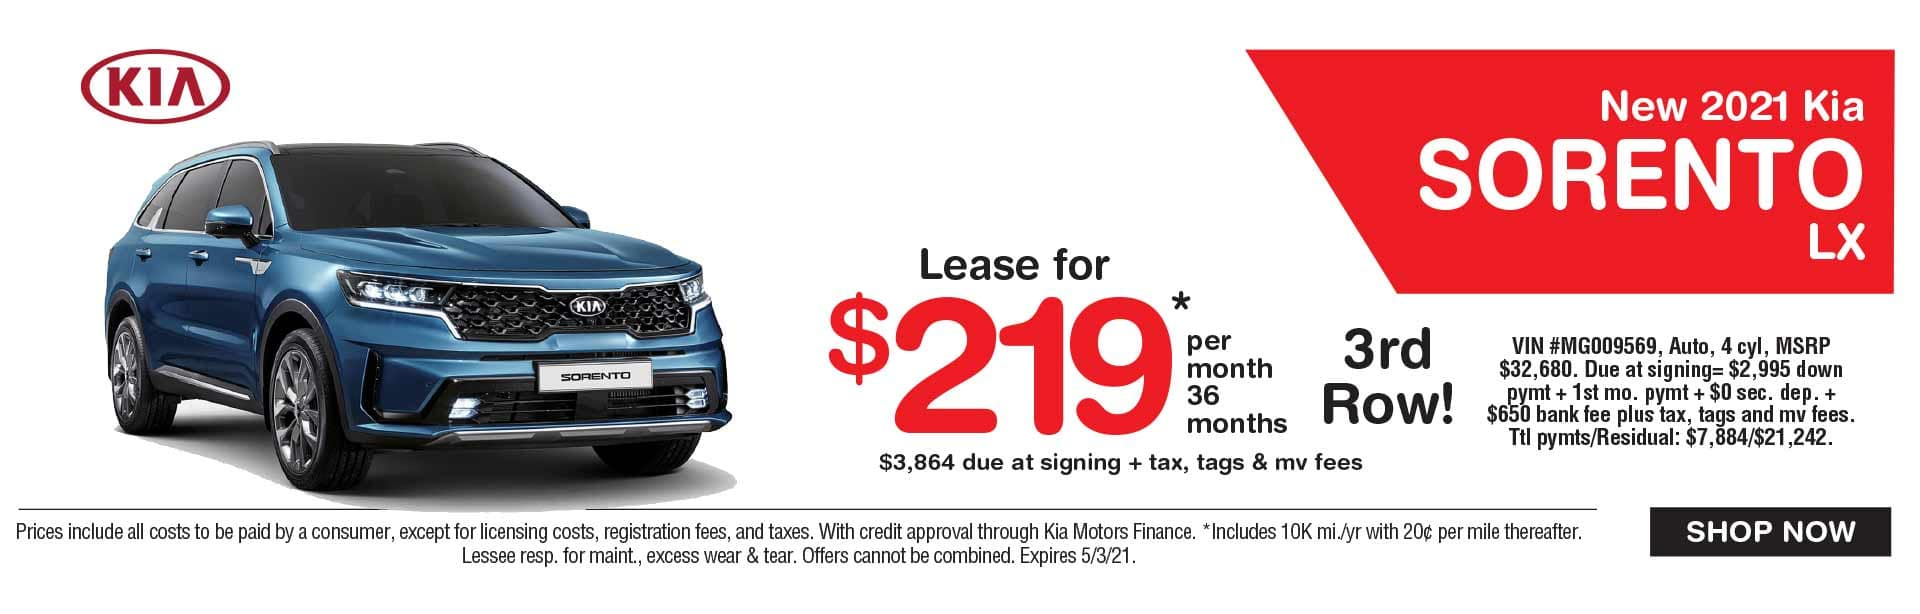 Kia Sorento Lease Spring Savings Kia Dealer NJ near me